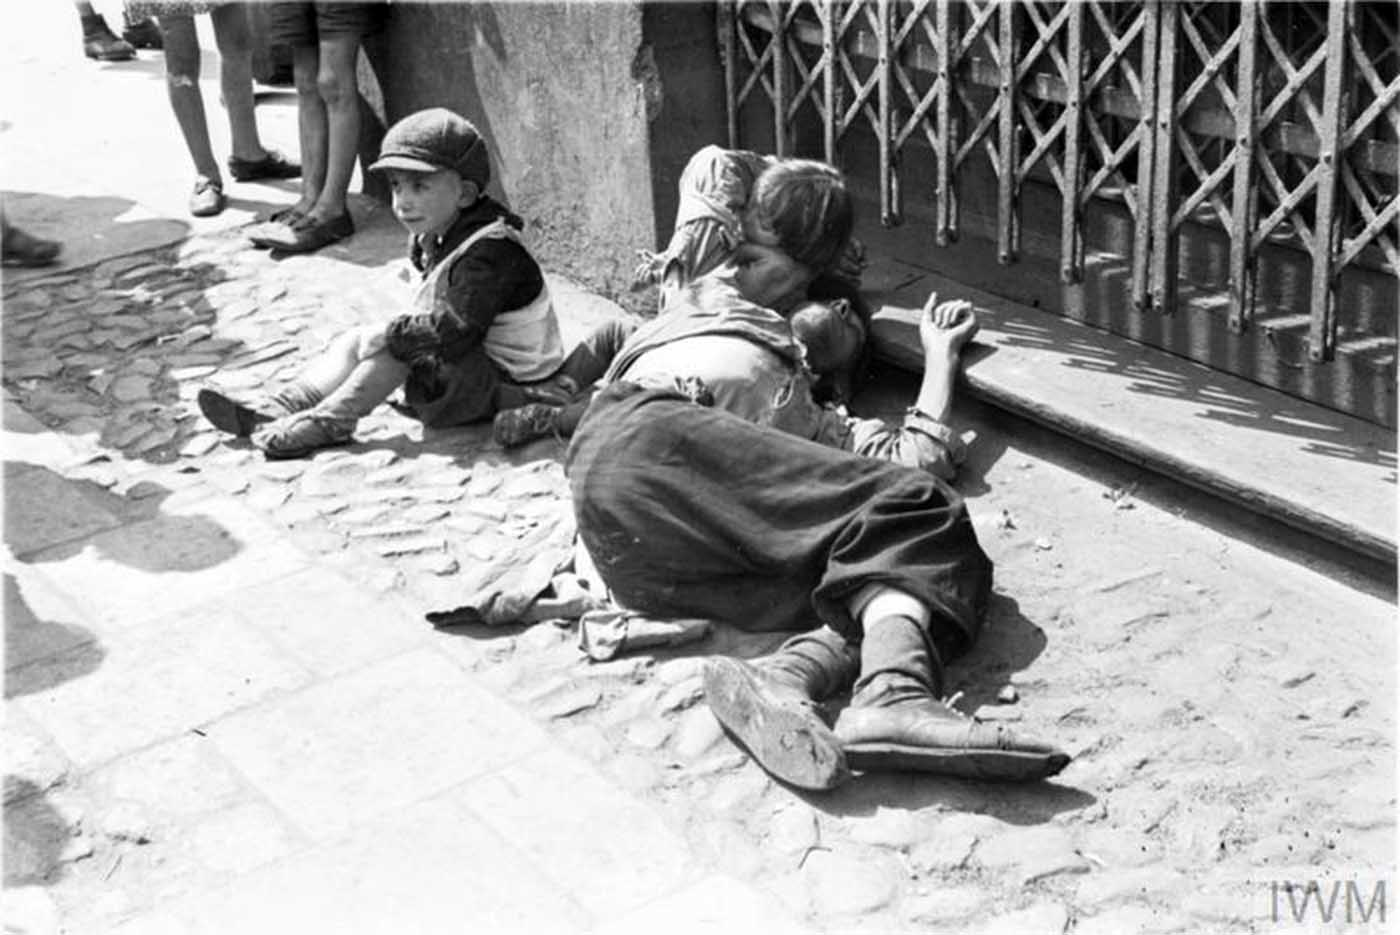 A starving man (father ?) and two emaciated children begging on the street in the ghetto.